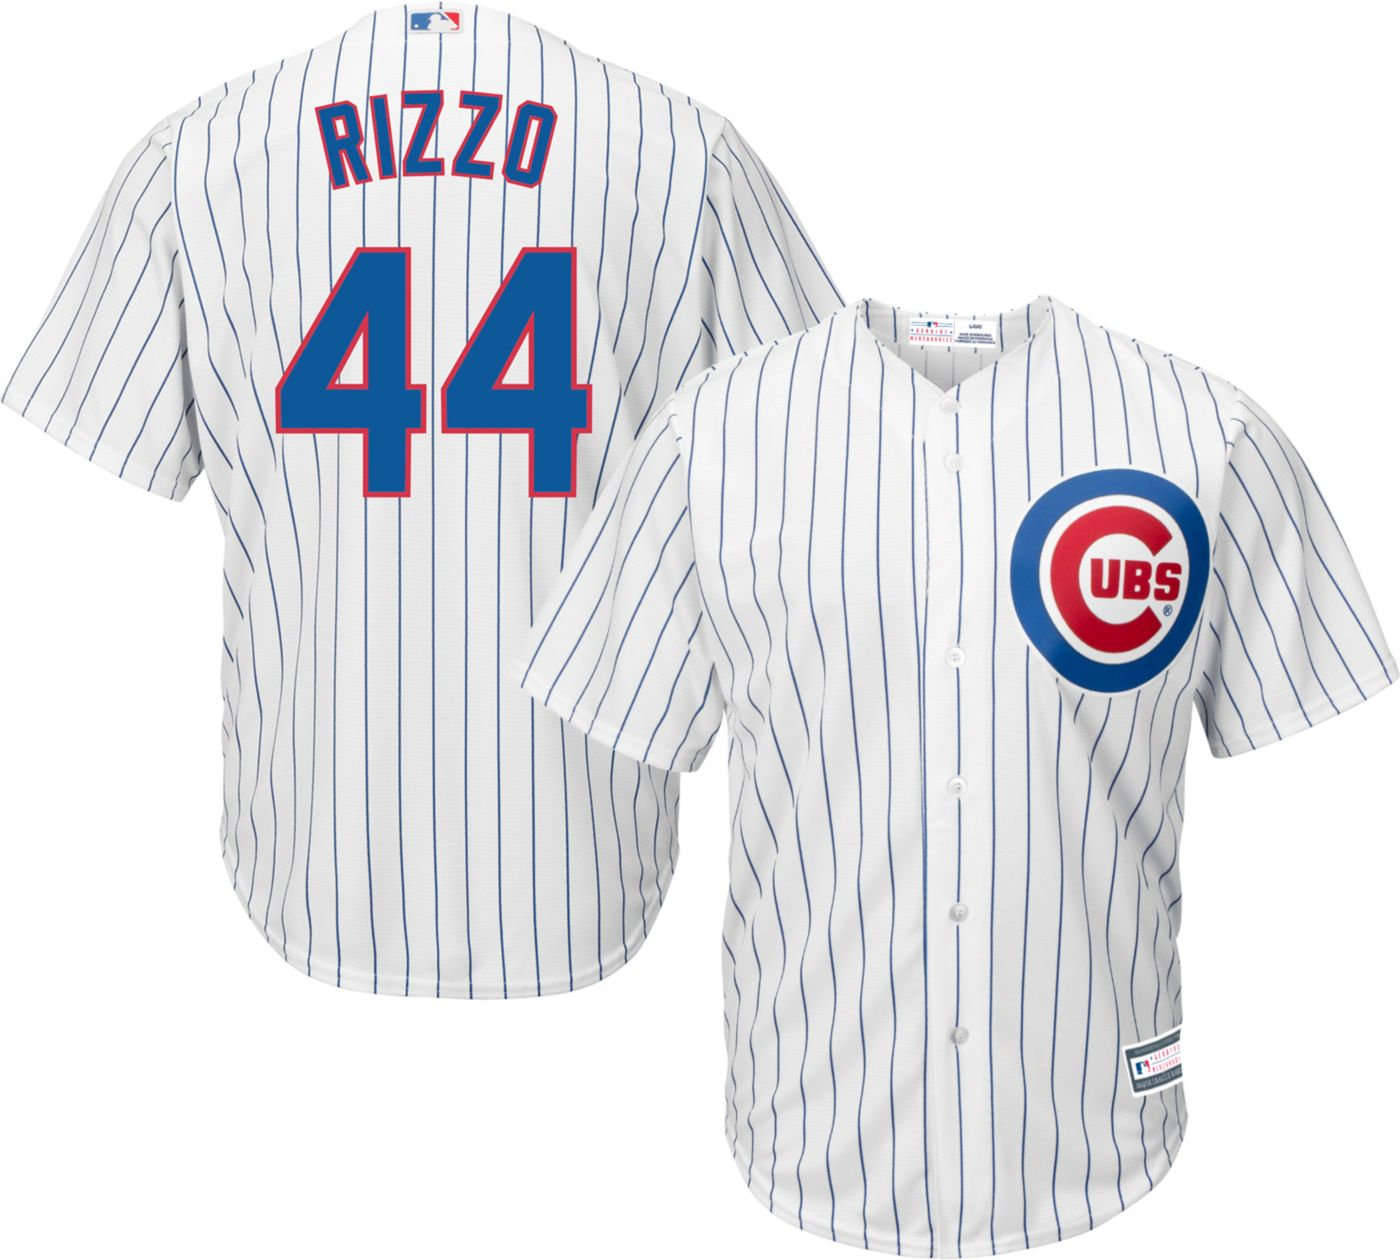 Youth Replica Chicago Cubs Anthony Rizzo #44 Home White Jersey